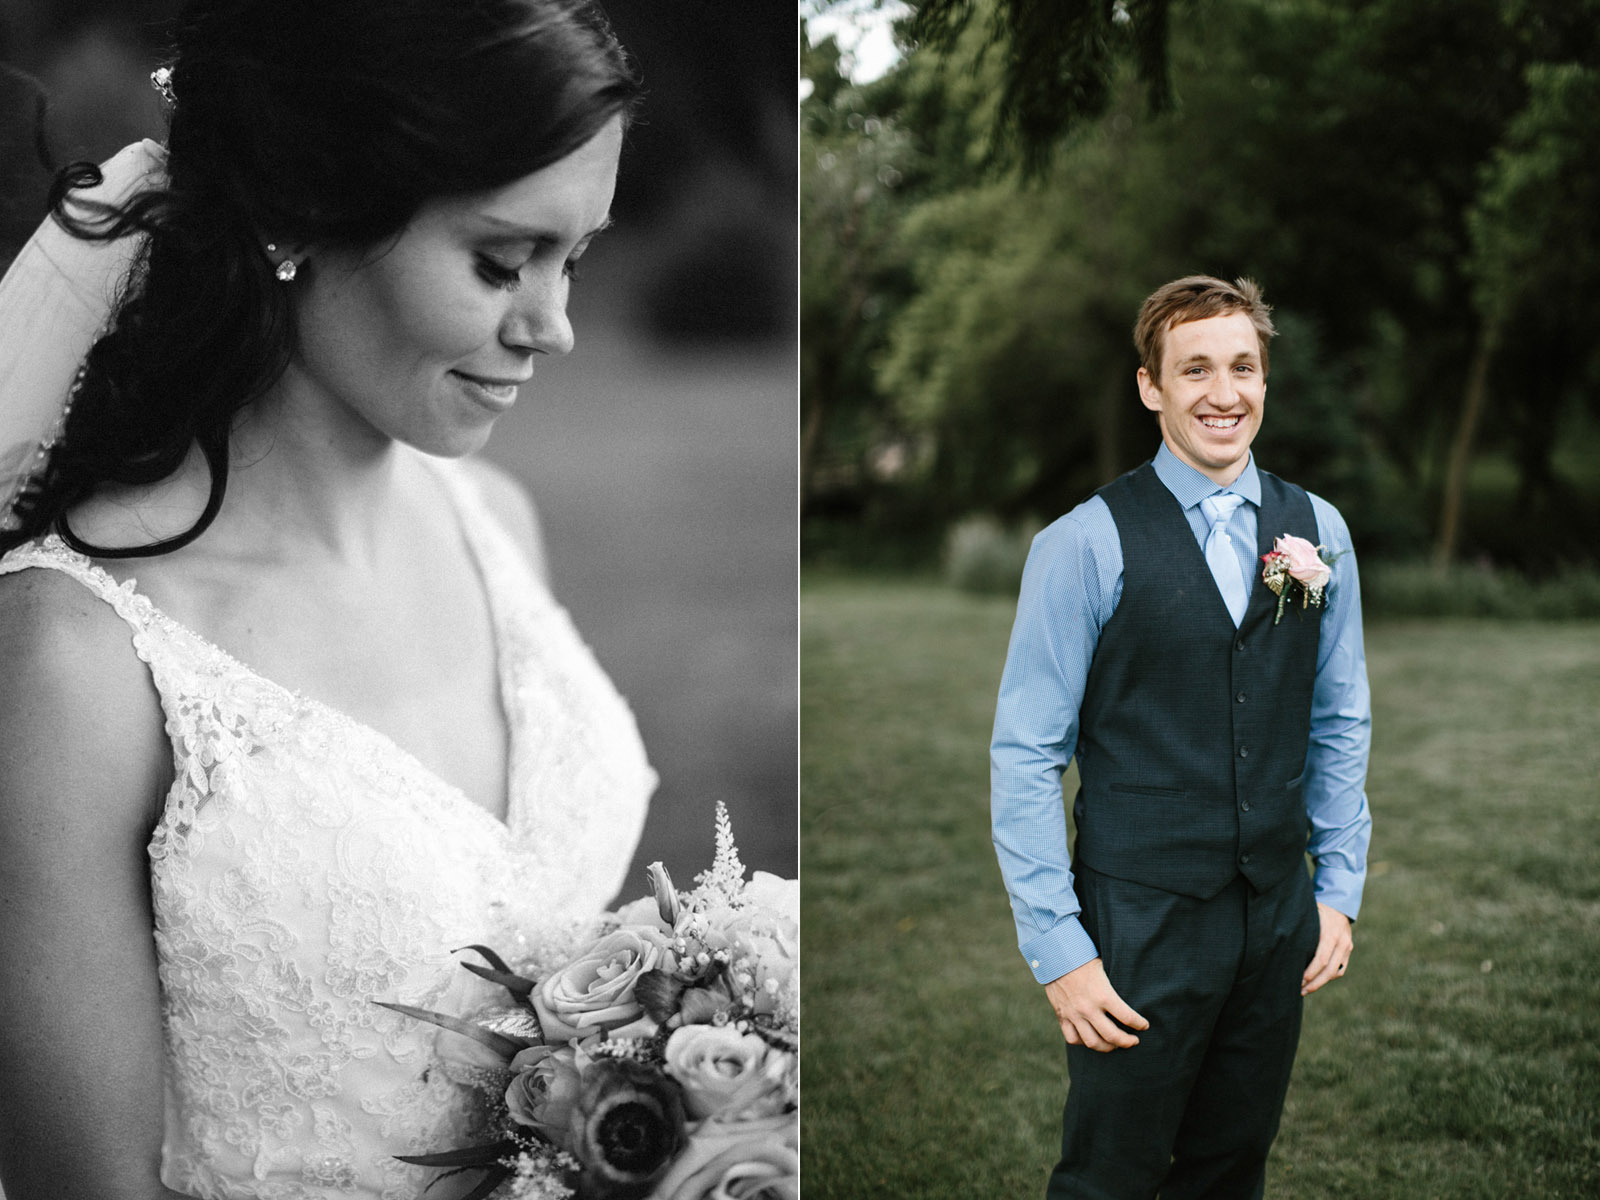 Outdoor_Wedding_SiouxFalls_MaryJoWegnerArboretum_Photographer_Calli&Jon_109.jpg